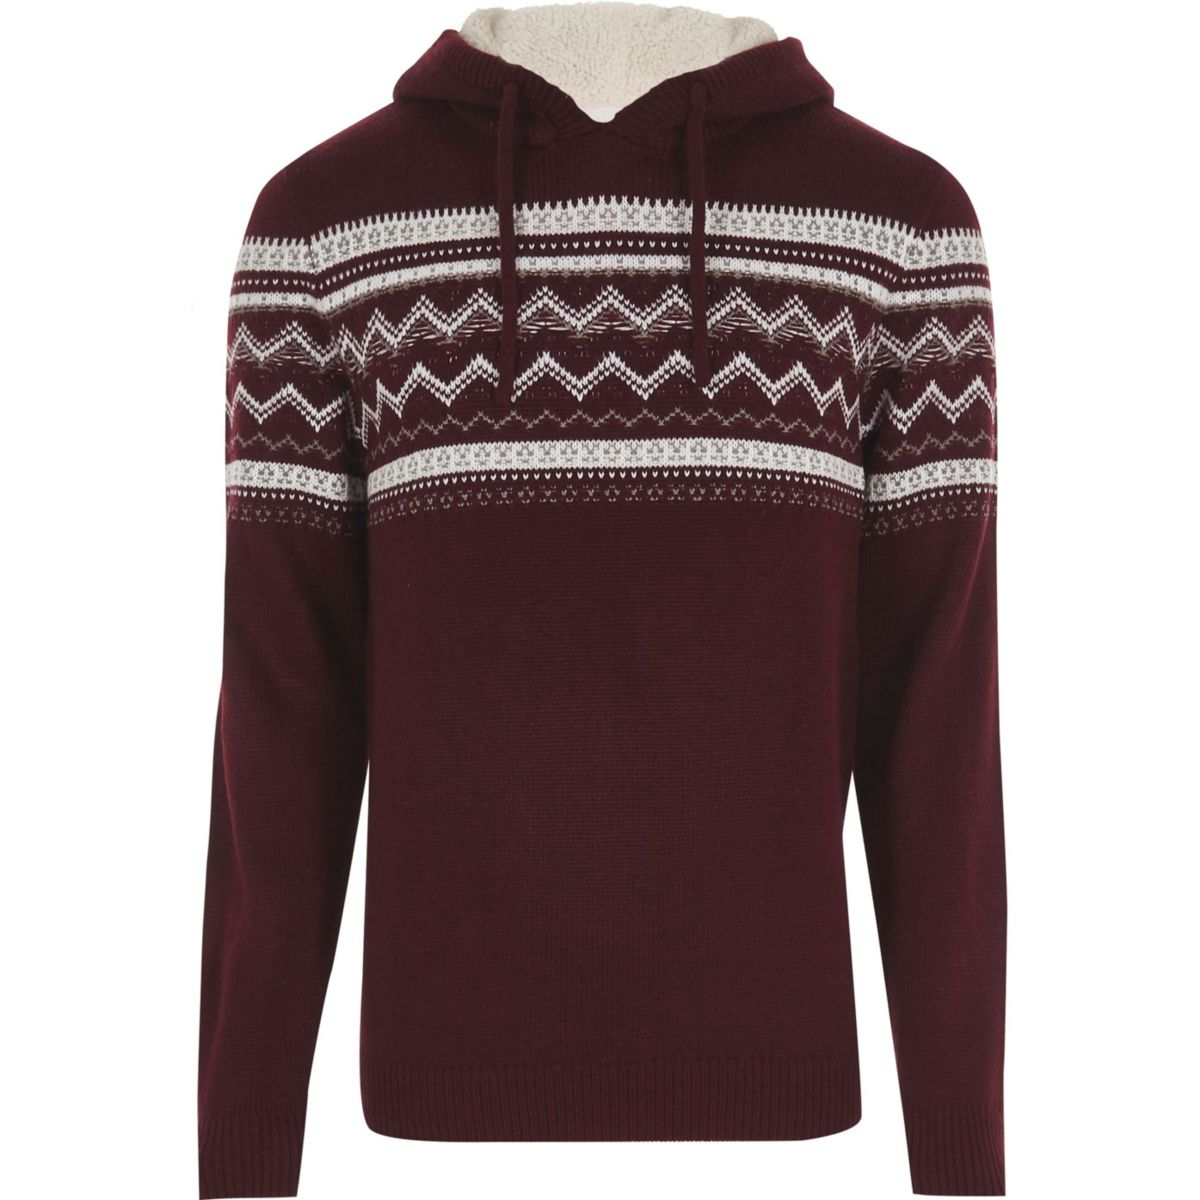 Dark red Fairisle knit hooded sweater